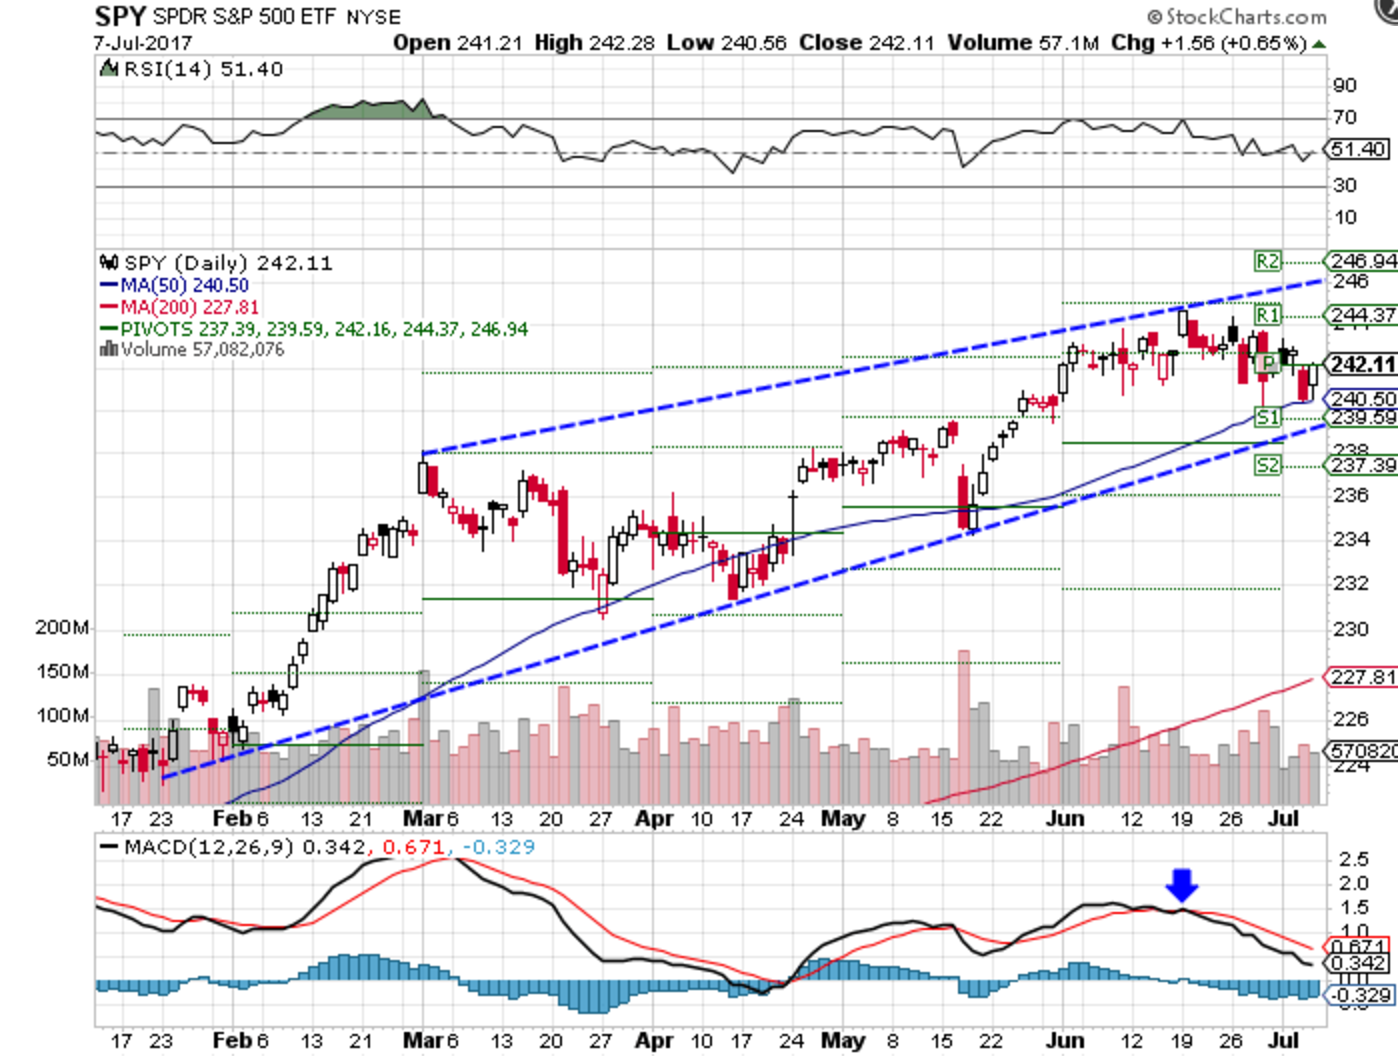 Technical chart showing the year-to-date performance of the SPDR S&P 500 ETF (SPY)